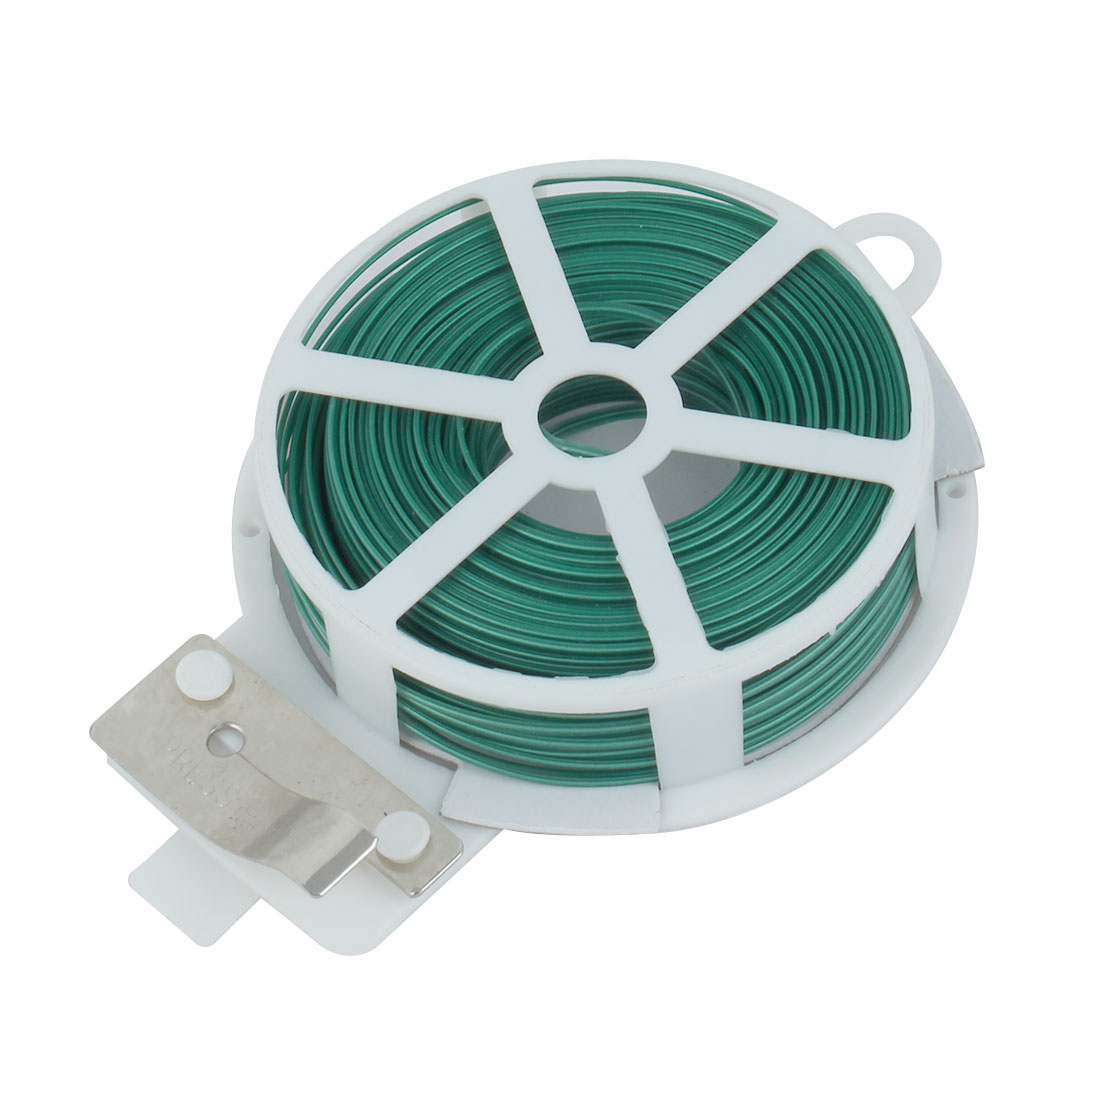 Tie Twist Roll Strapping Wire Tape Cutter Green for Gardening Packing Crafts